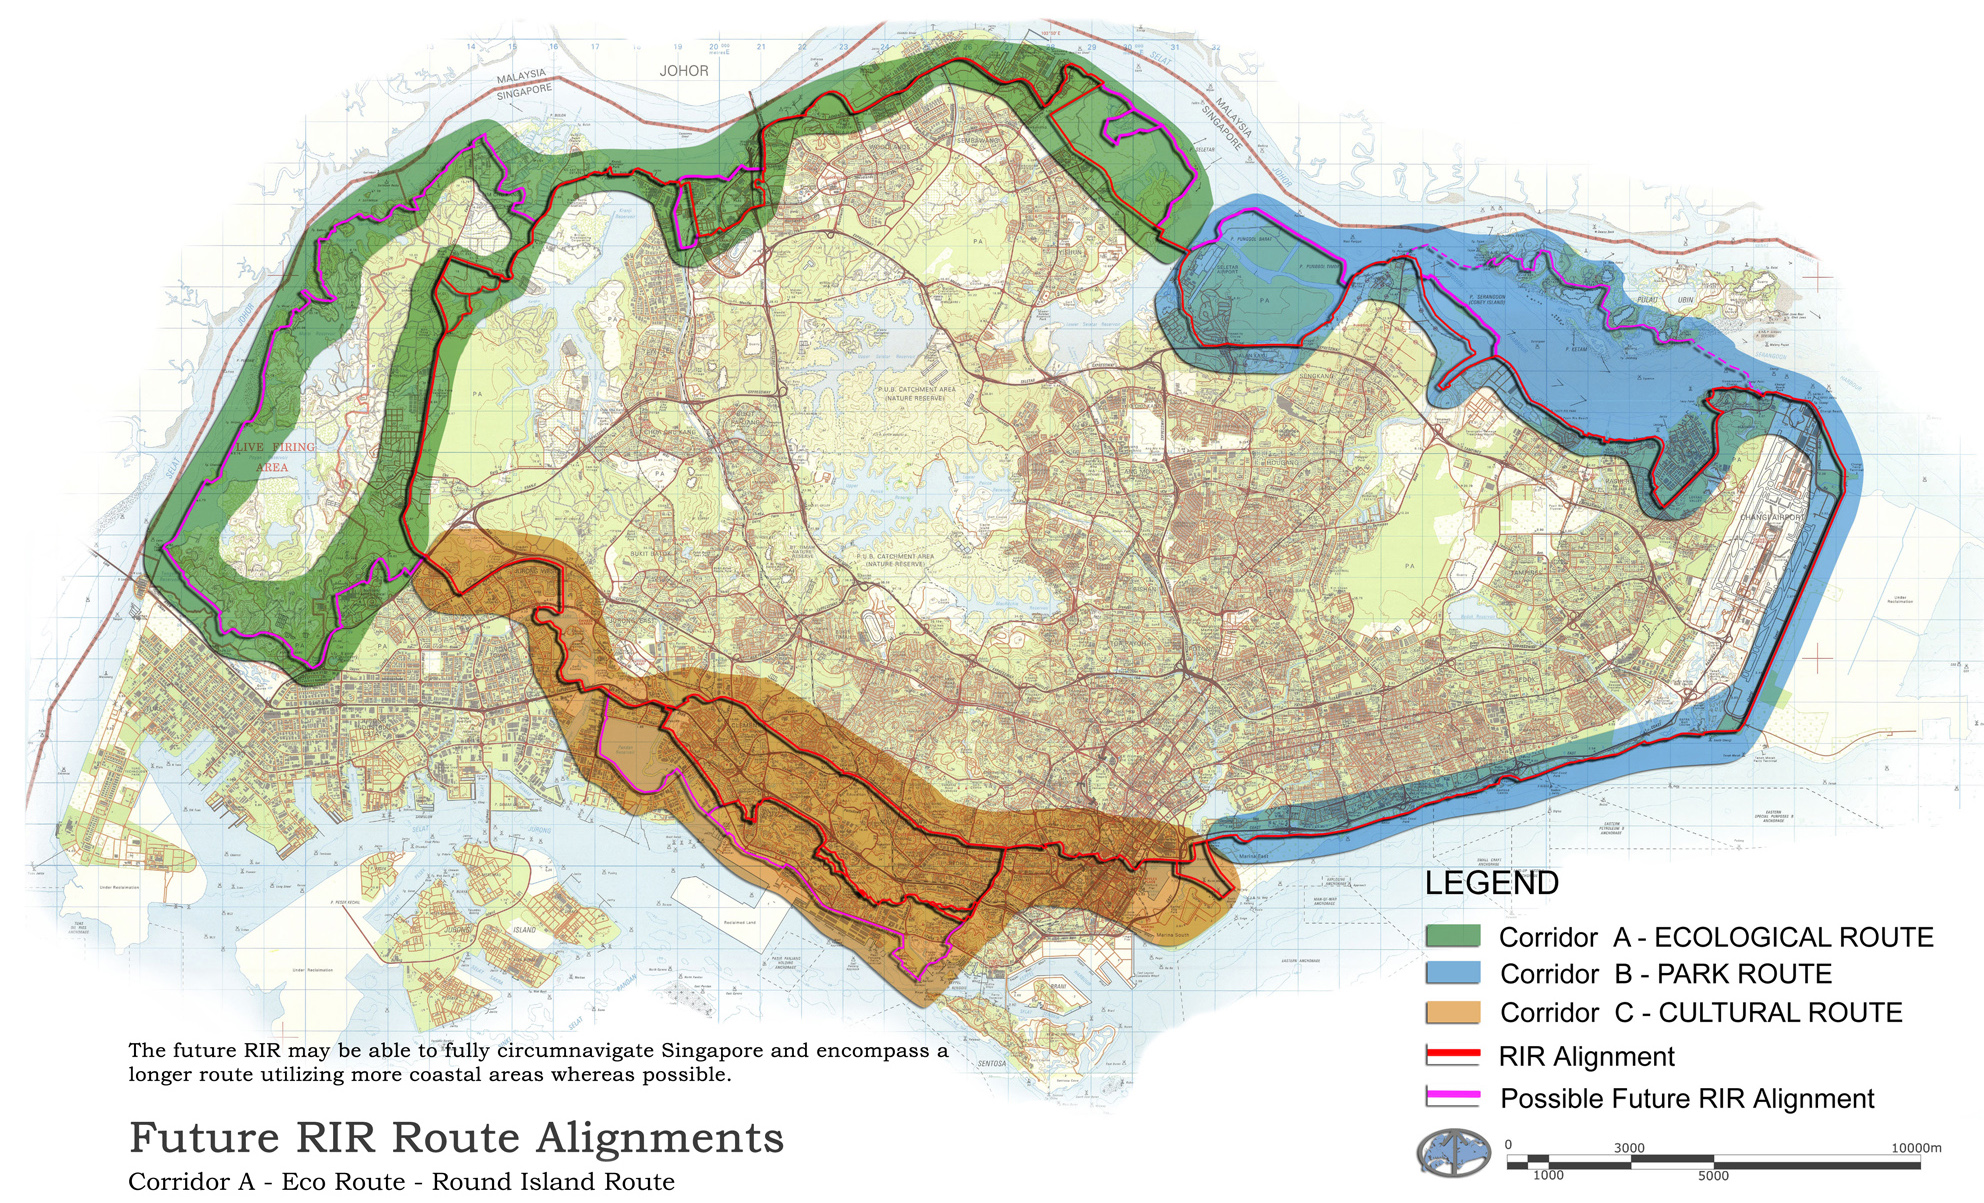 SCLD's Round Island Route Plan indicating the 3no Corridors of the RIR from the 2010 Masterplanning project.